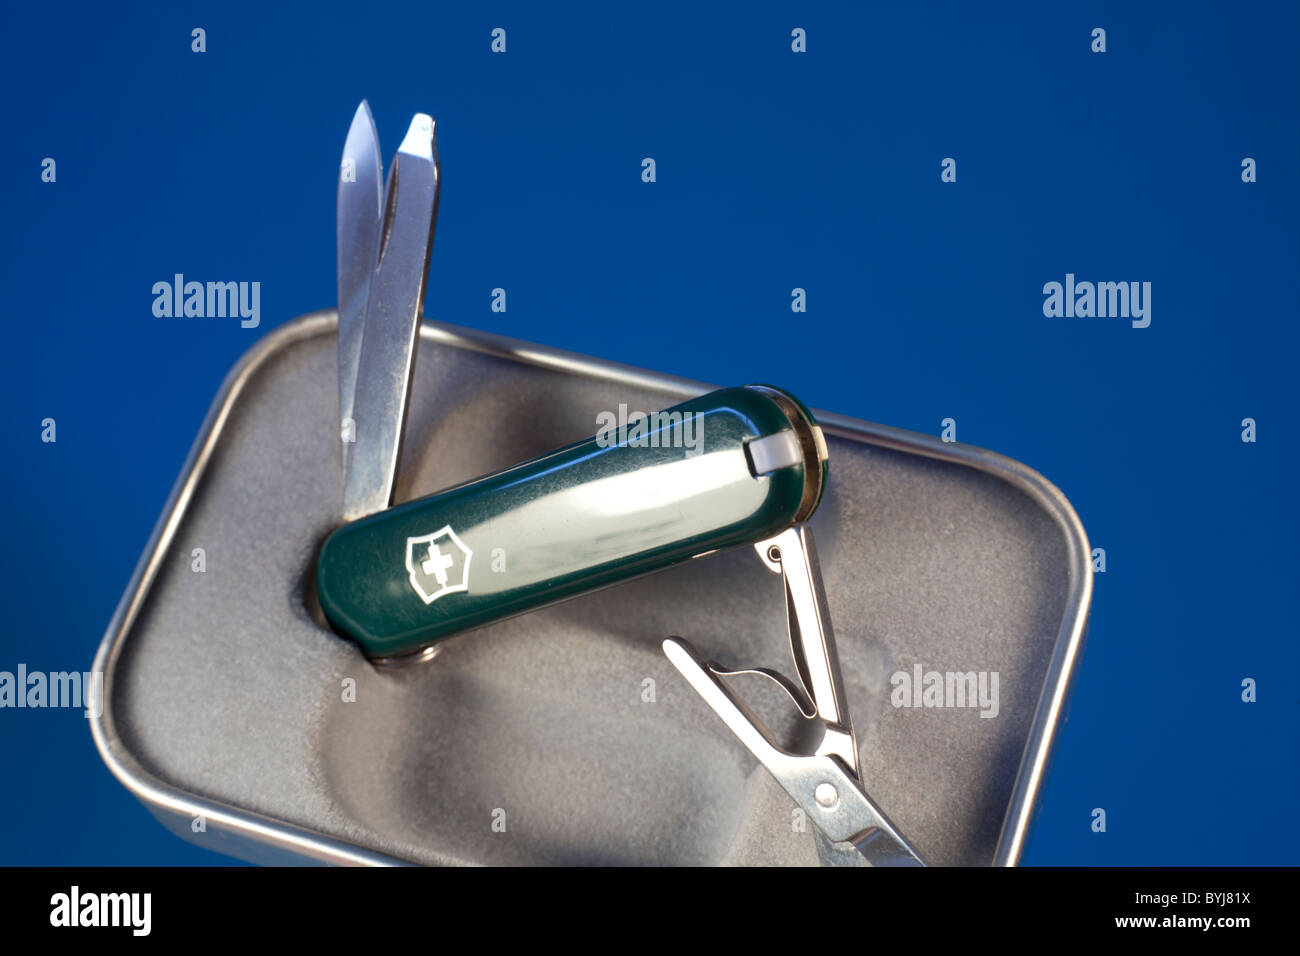 A executive swiss army knife in green - Stock Image